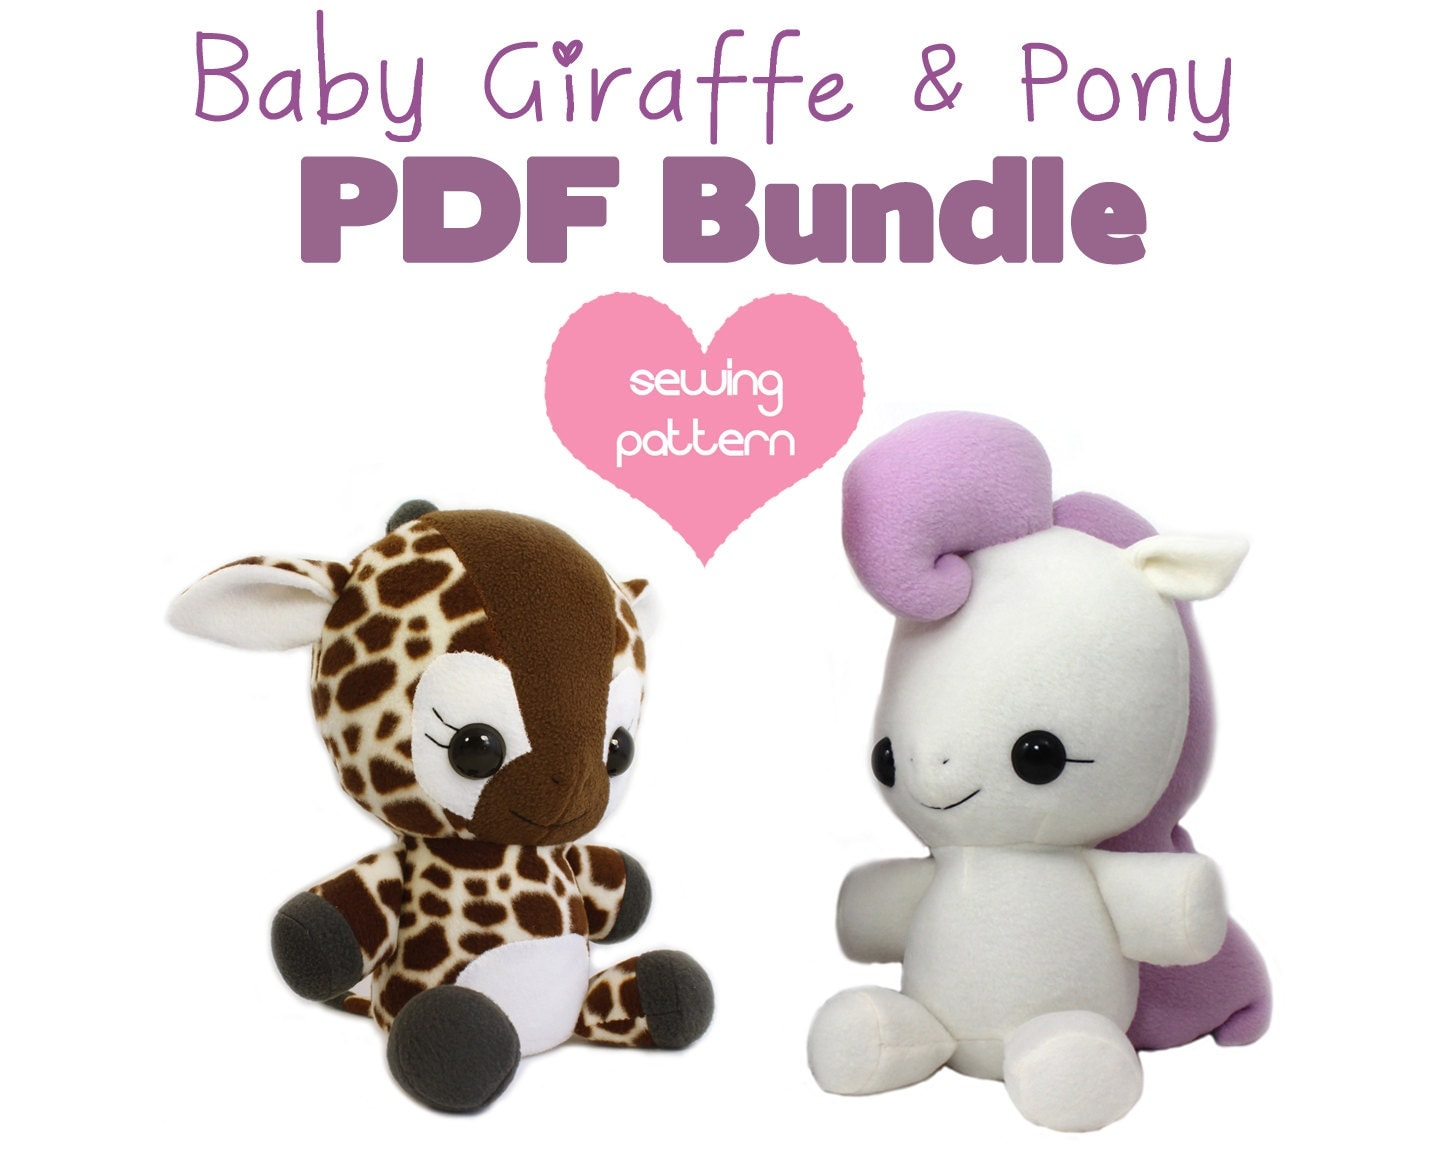 Plush Cute Giraffe Sewing Pattern | www.picsbud.com